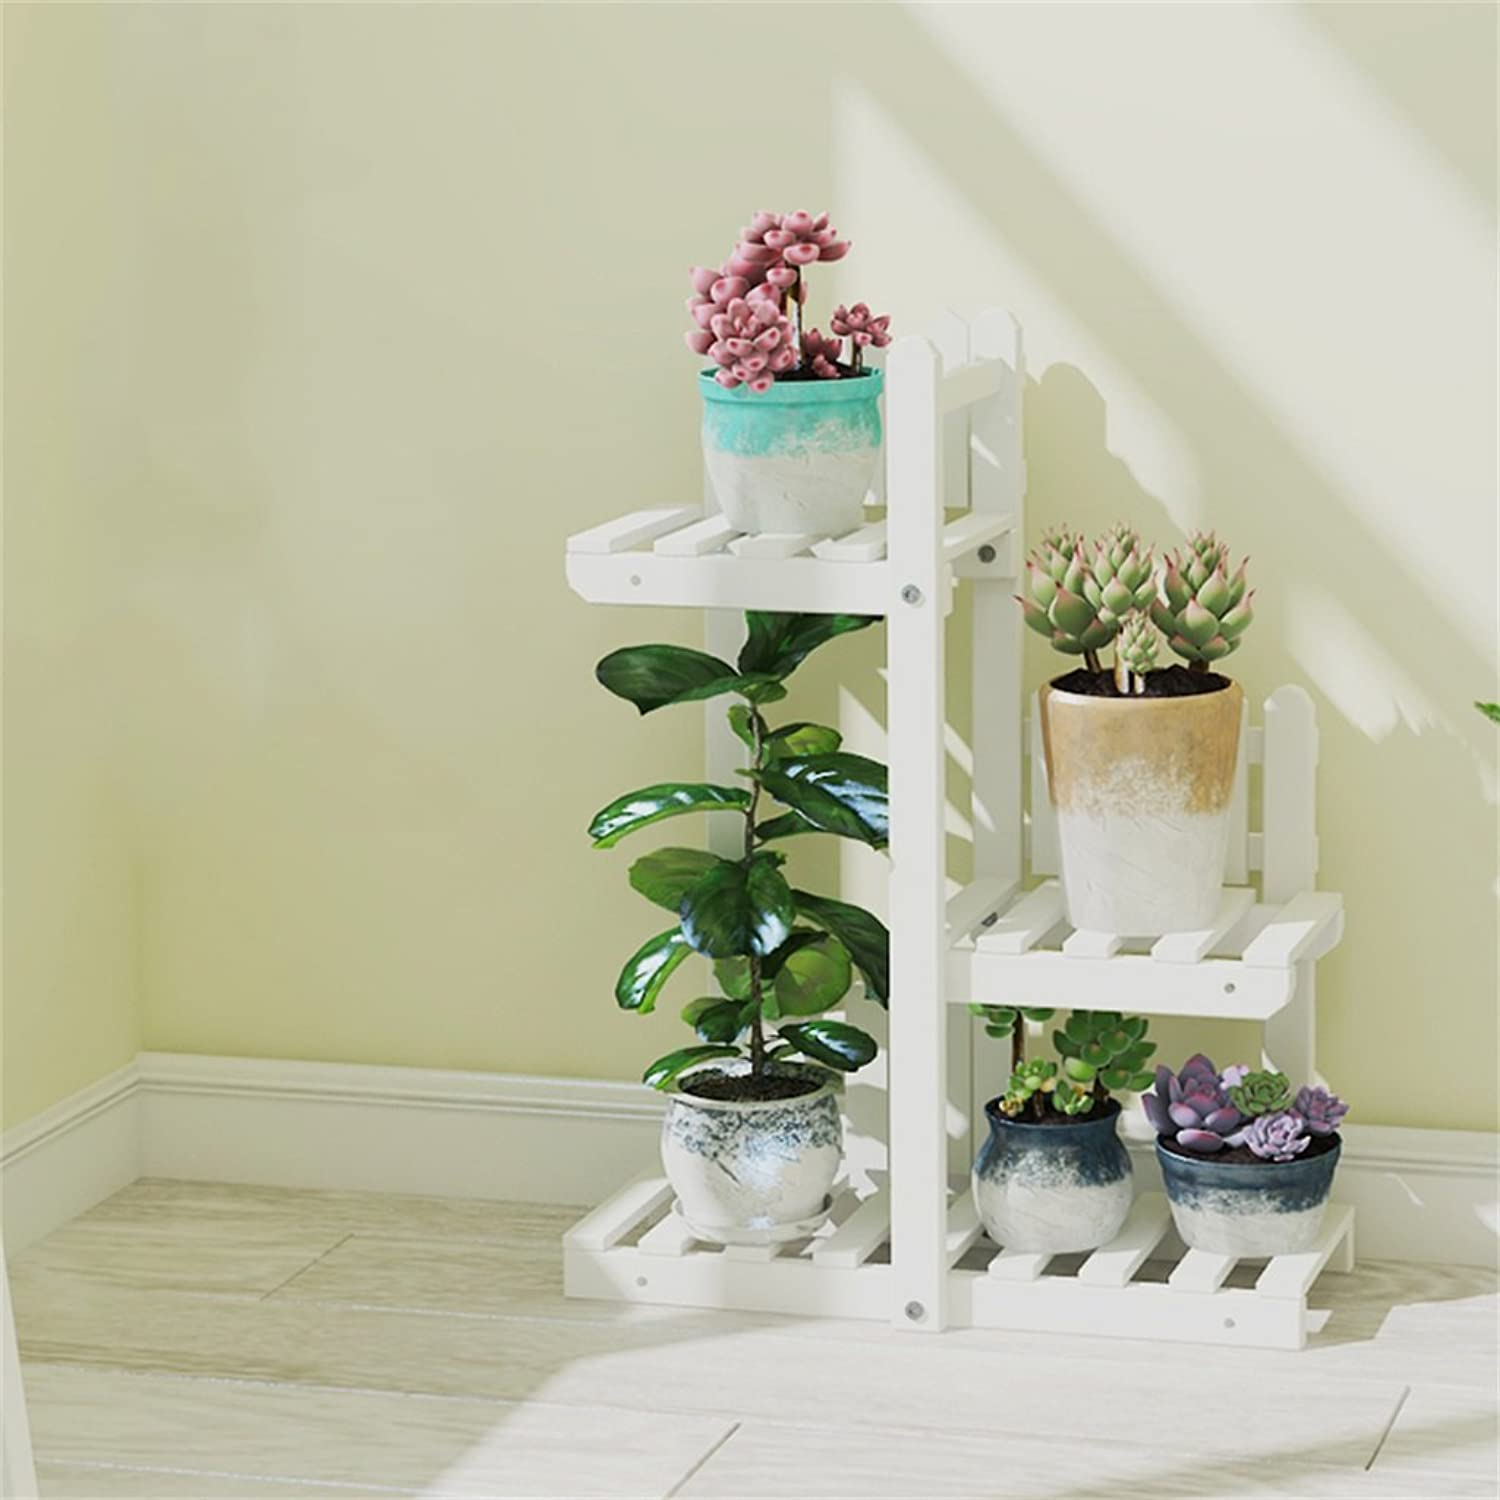 NYDZDM Wooden Flower Stand Indoor and Outdoor Multi-Story Space-Saving Solid Wood Balcony Decoration Living Room Display Flower Stand 50L×20W×65H (cm), 19.7L×7.9W×25.6H (inch) (color   White)